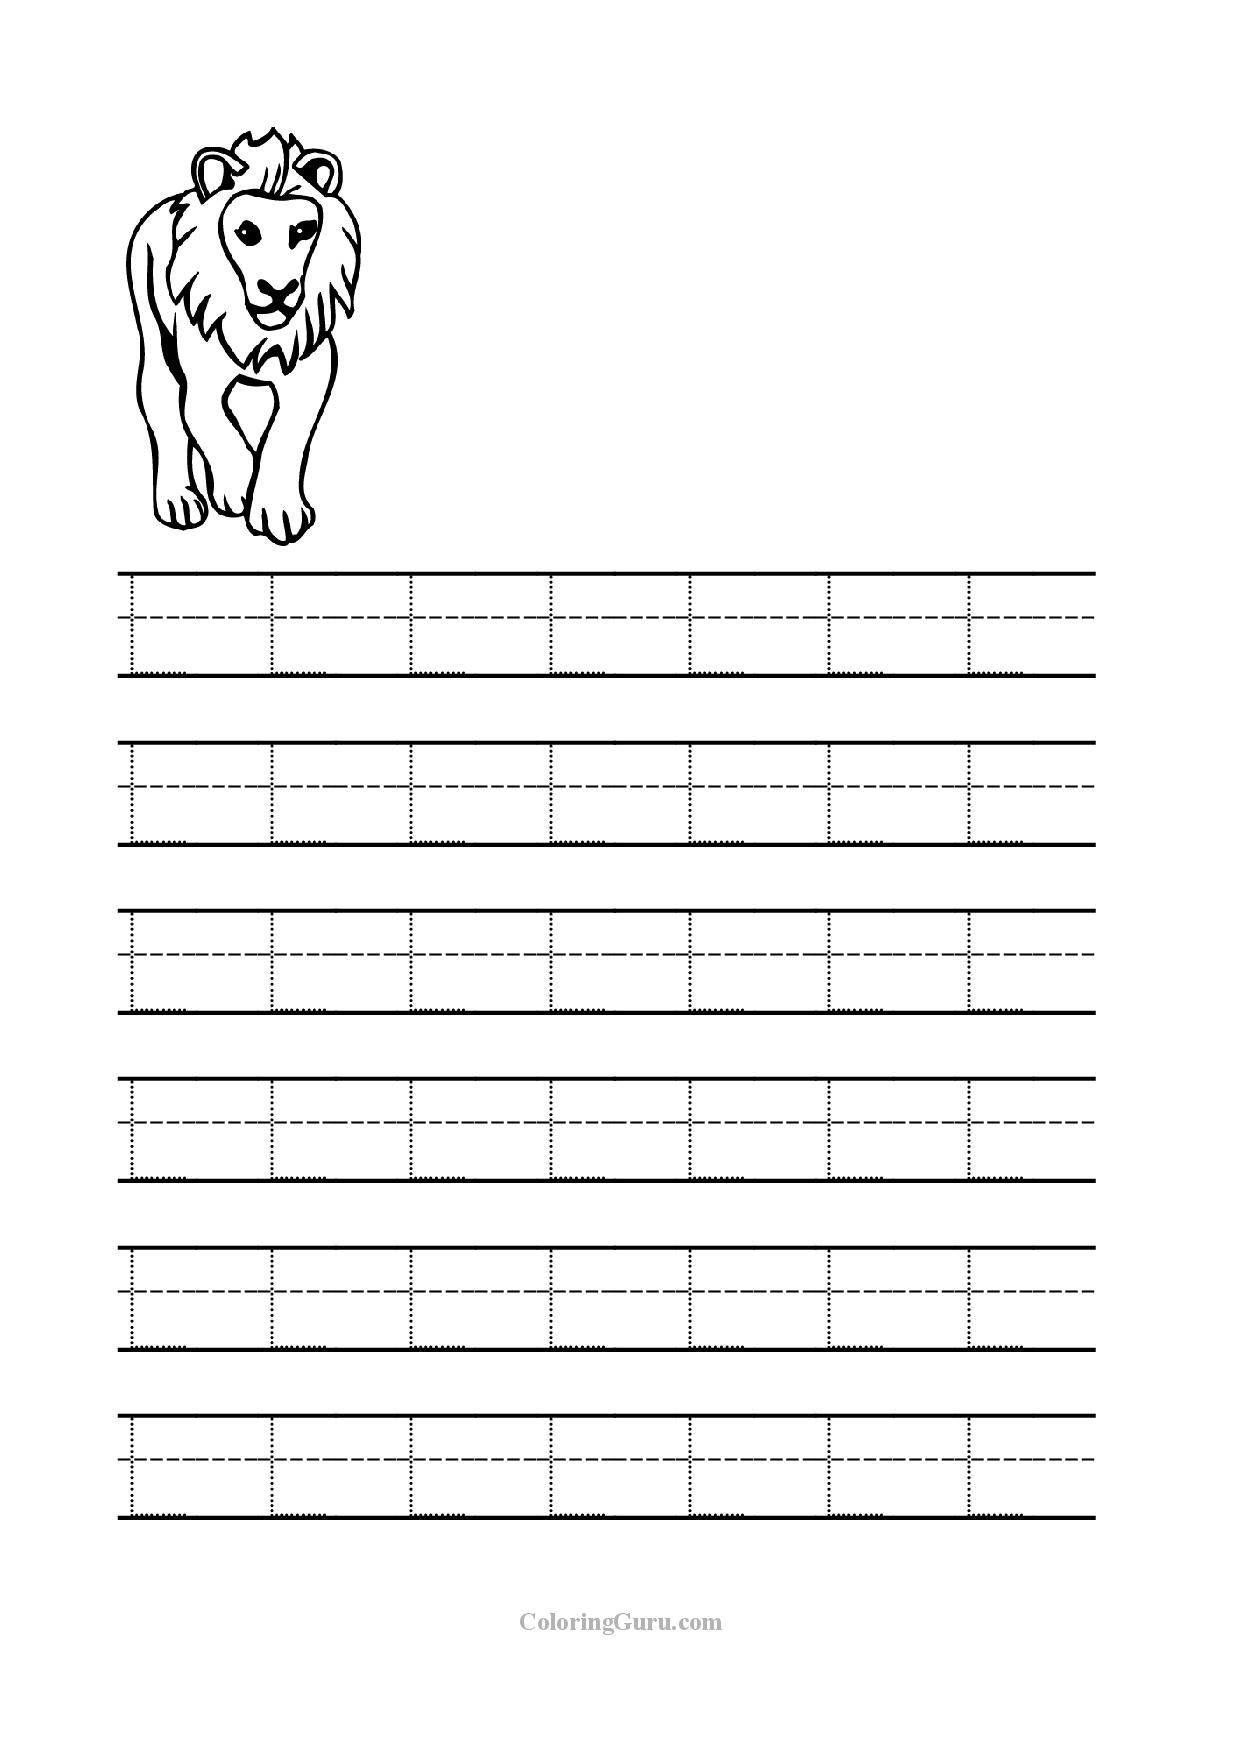 Worksheets Letter L Worksheets For Preschool free printable tracing letter l worksheets for preschool preschool